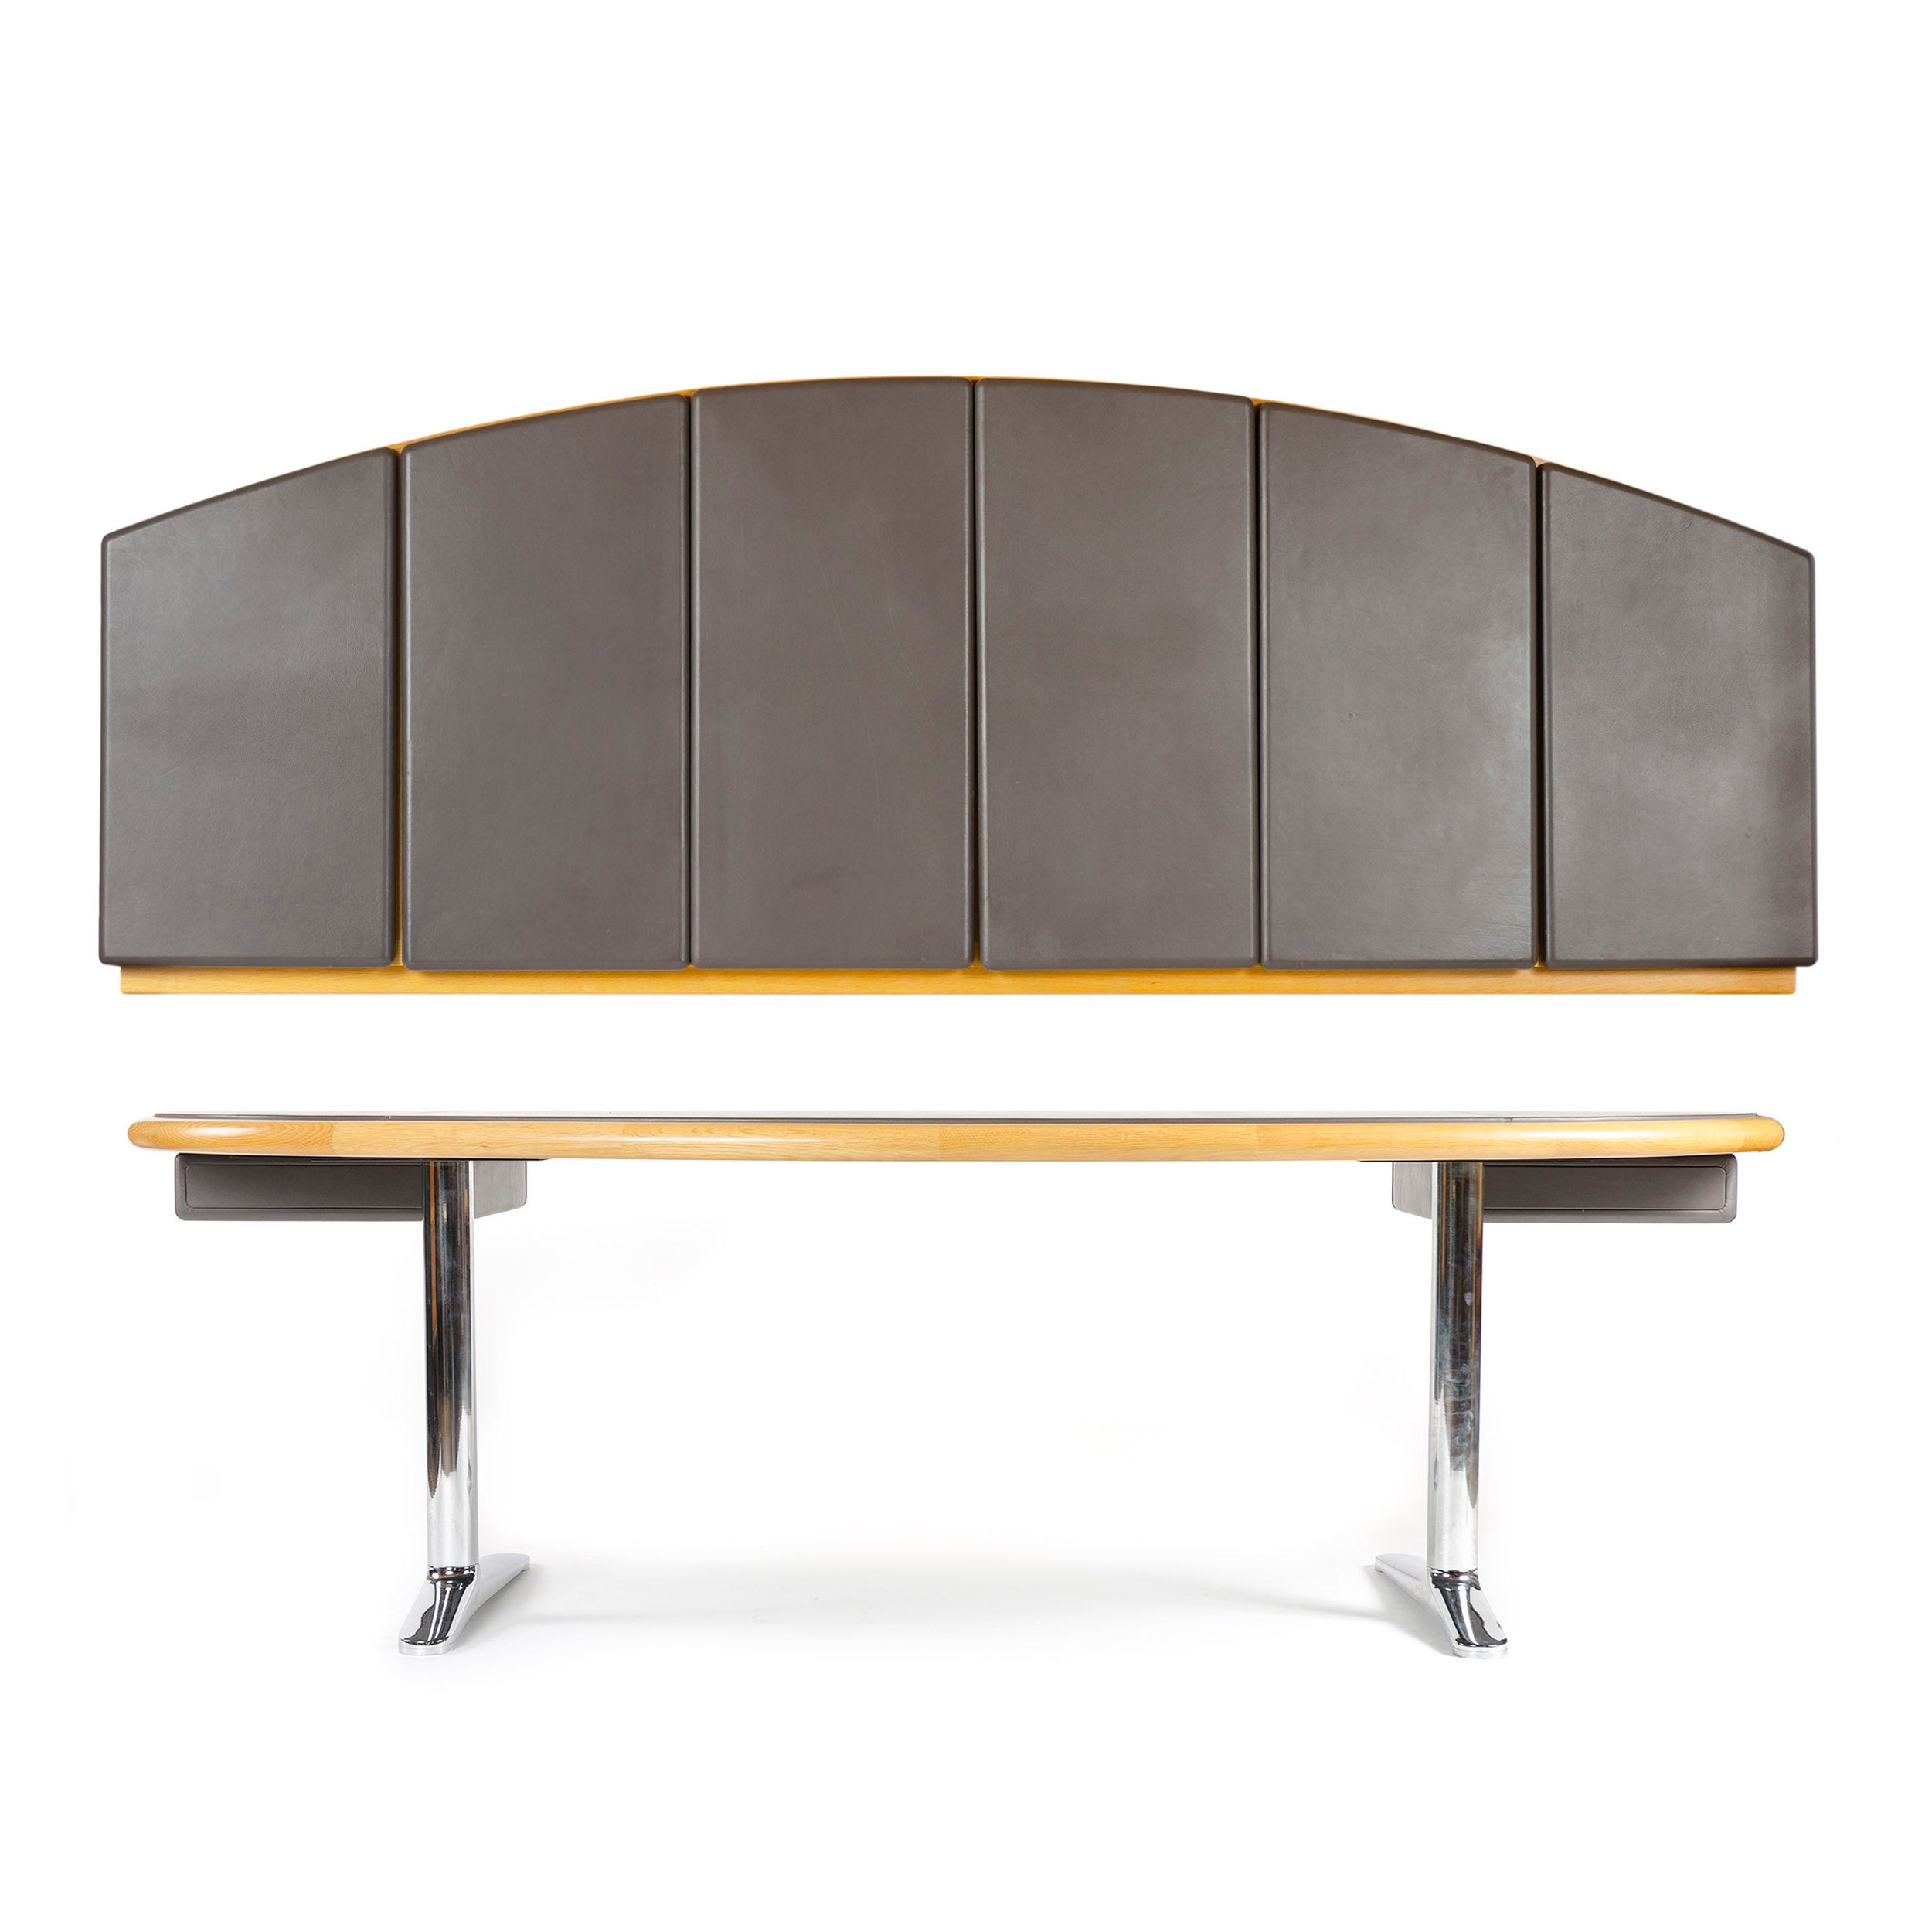 1970s Executive Office Desk by Warren Platner for Knoll